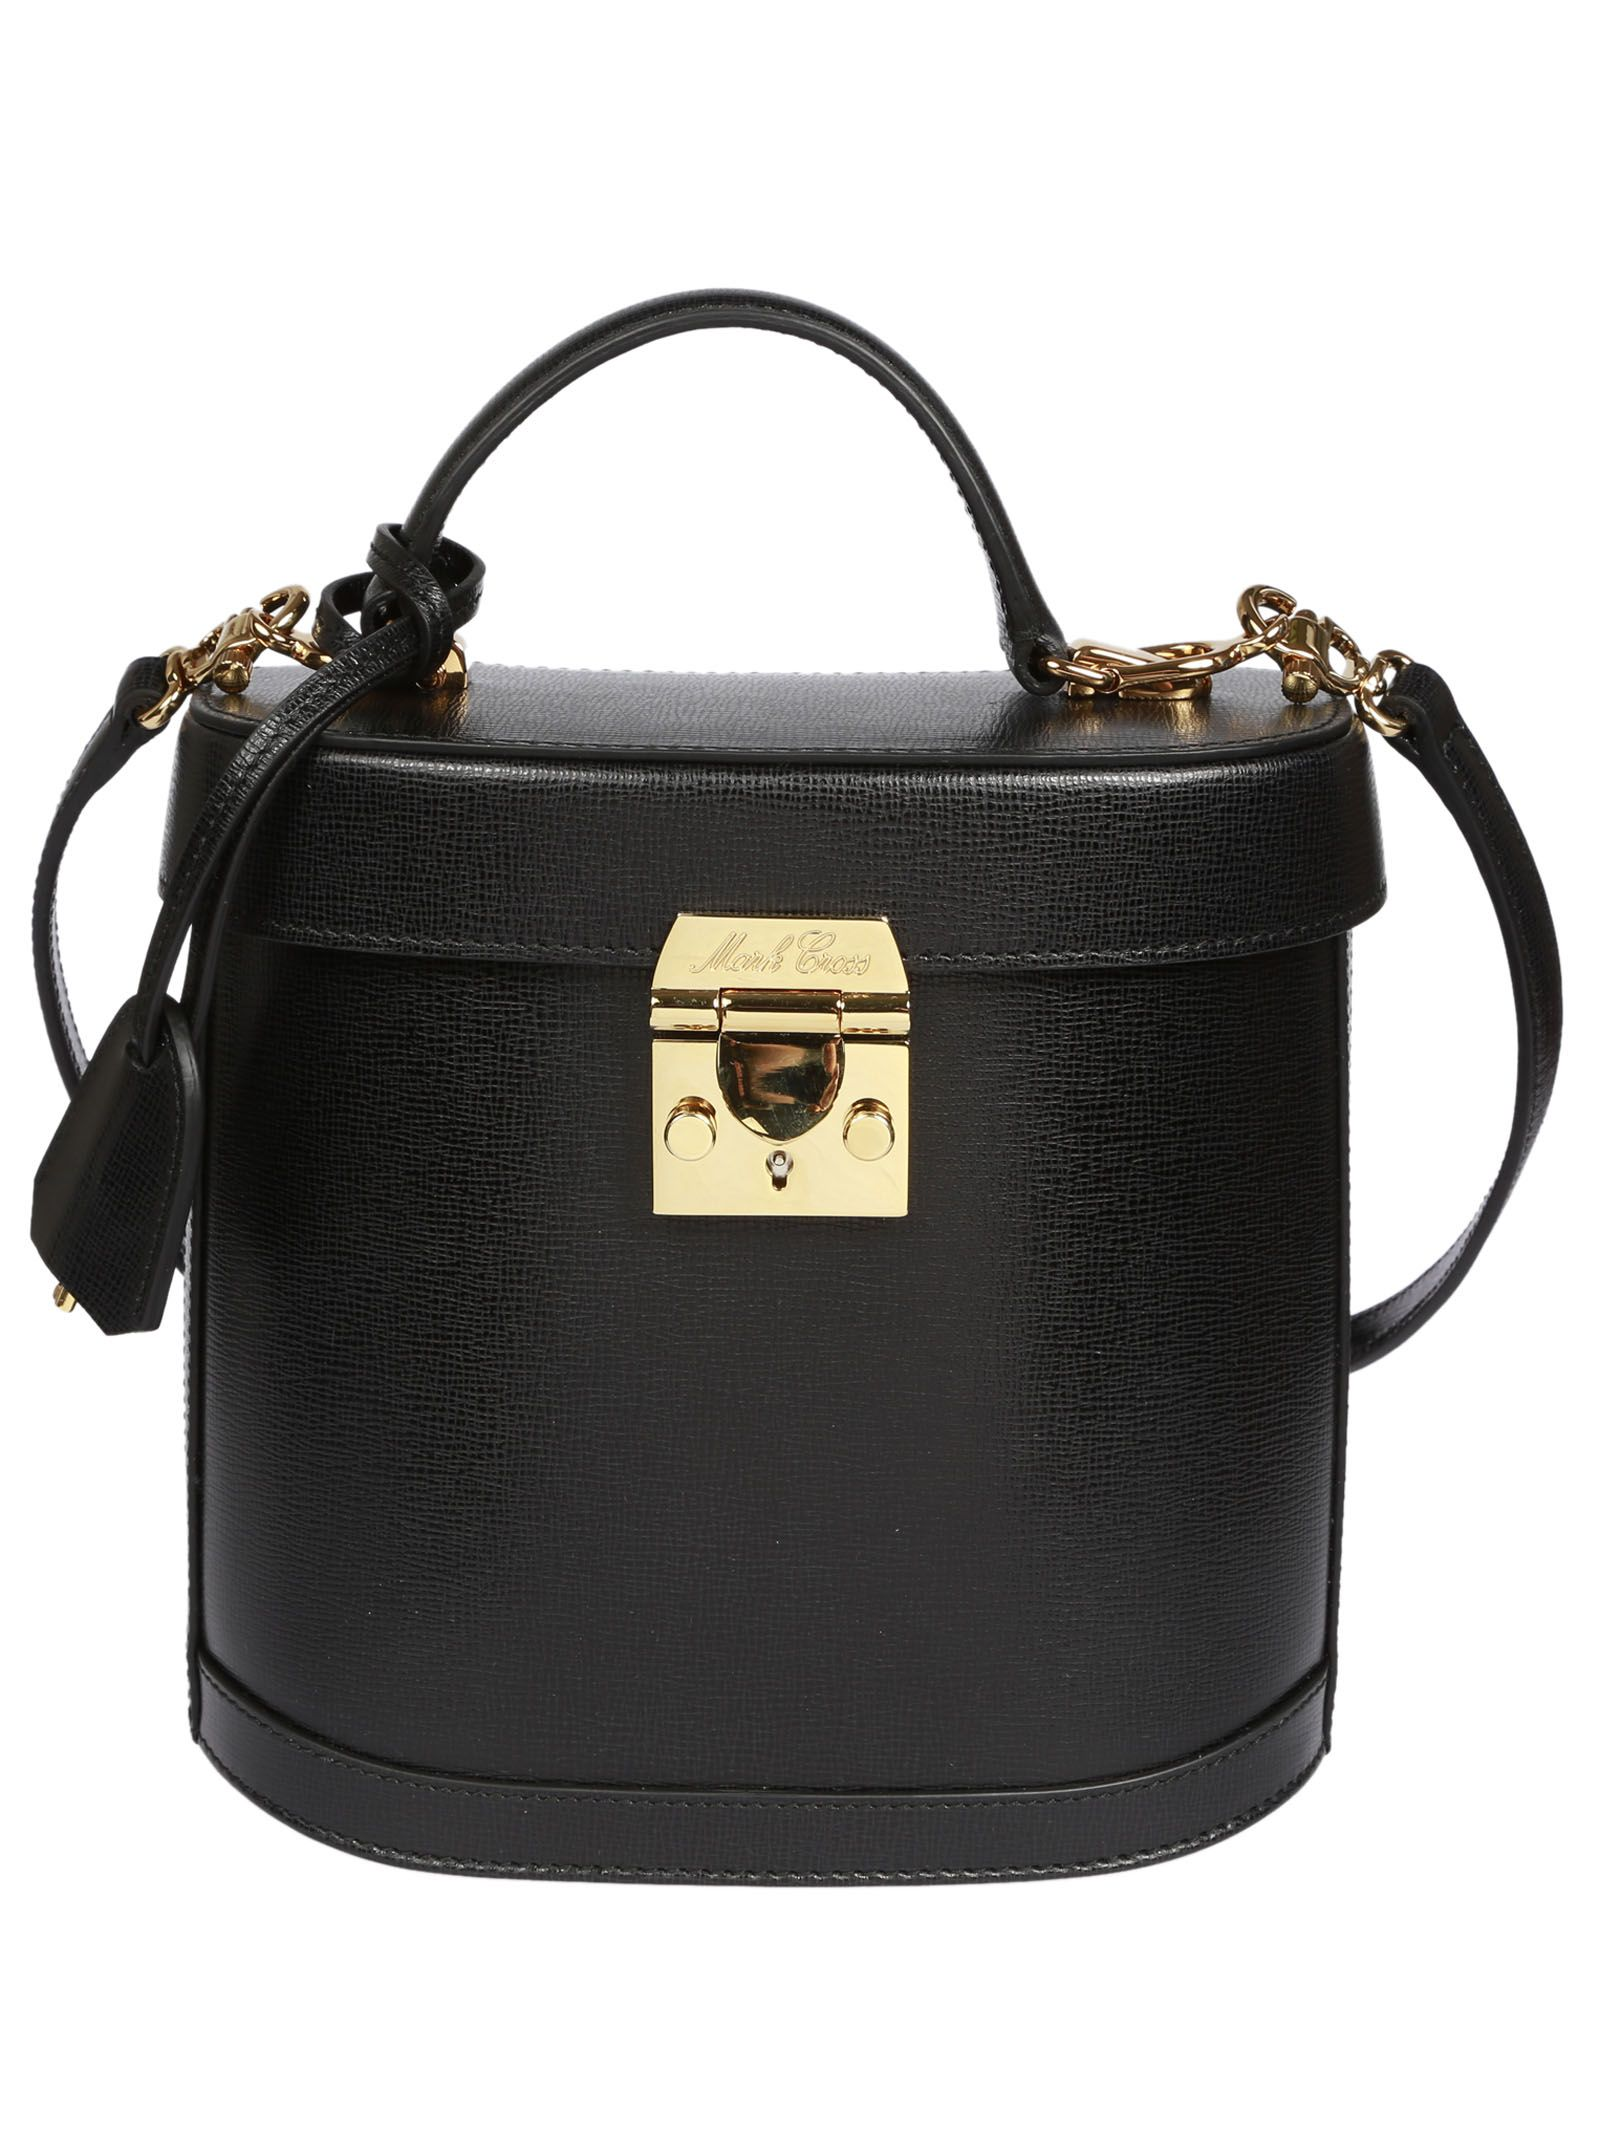 Mark Cross Benchley Shoulder Bag